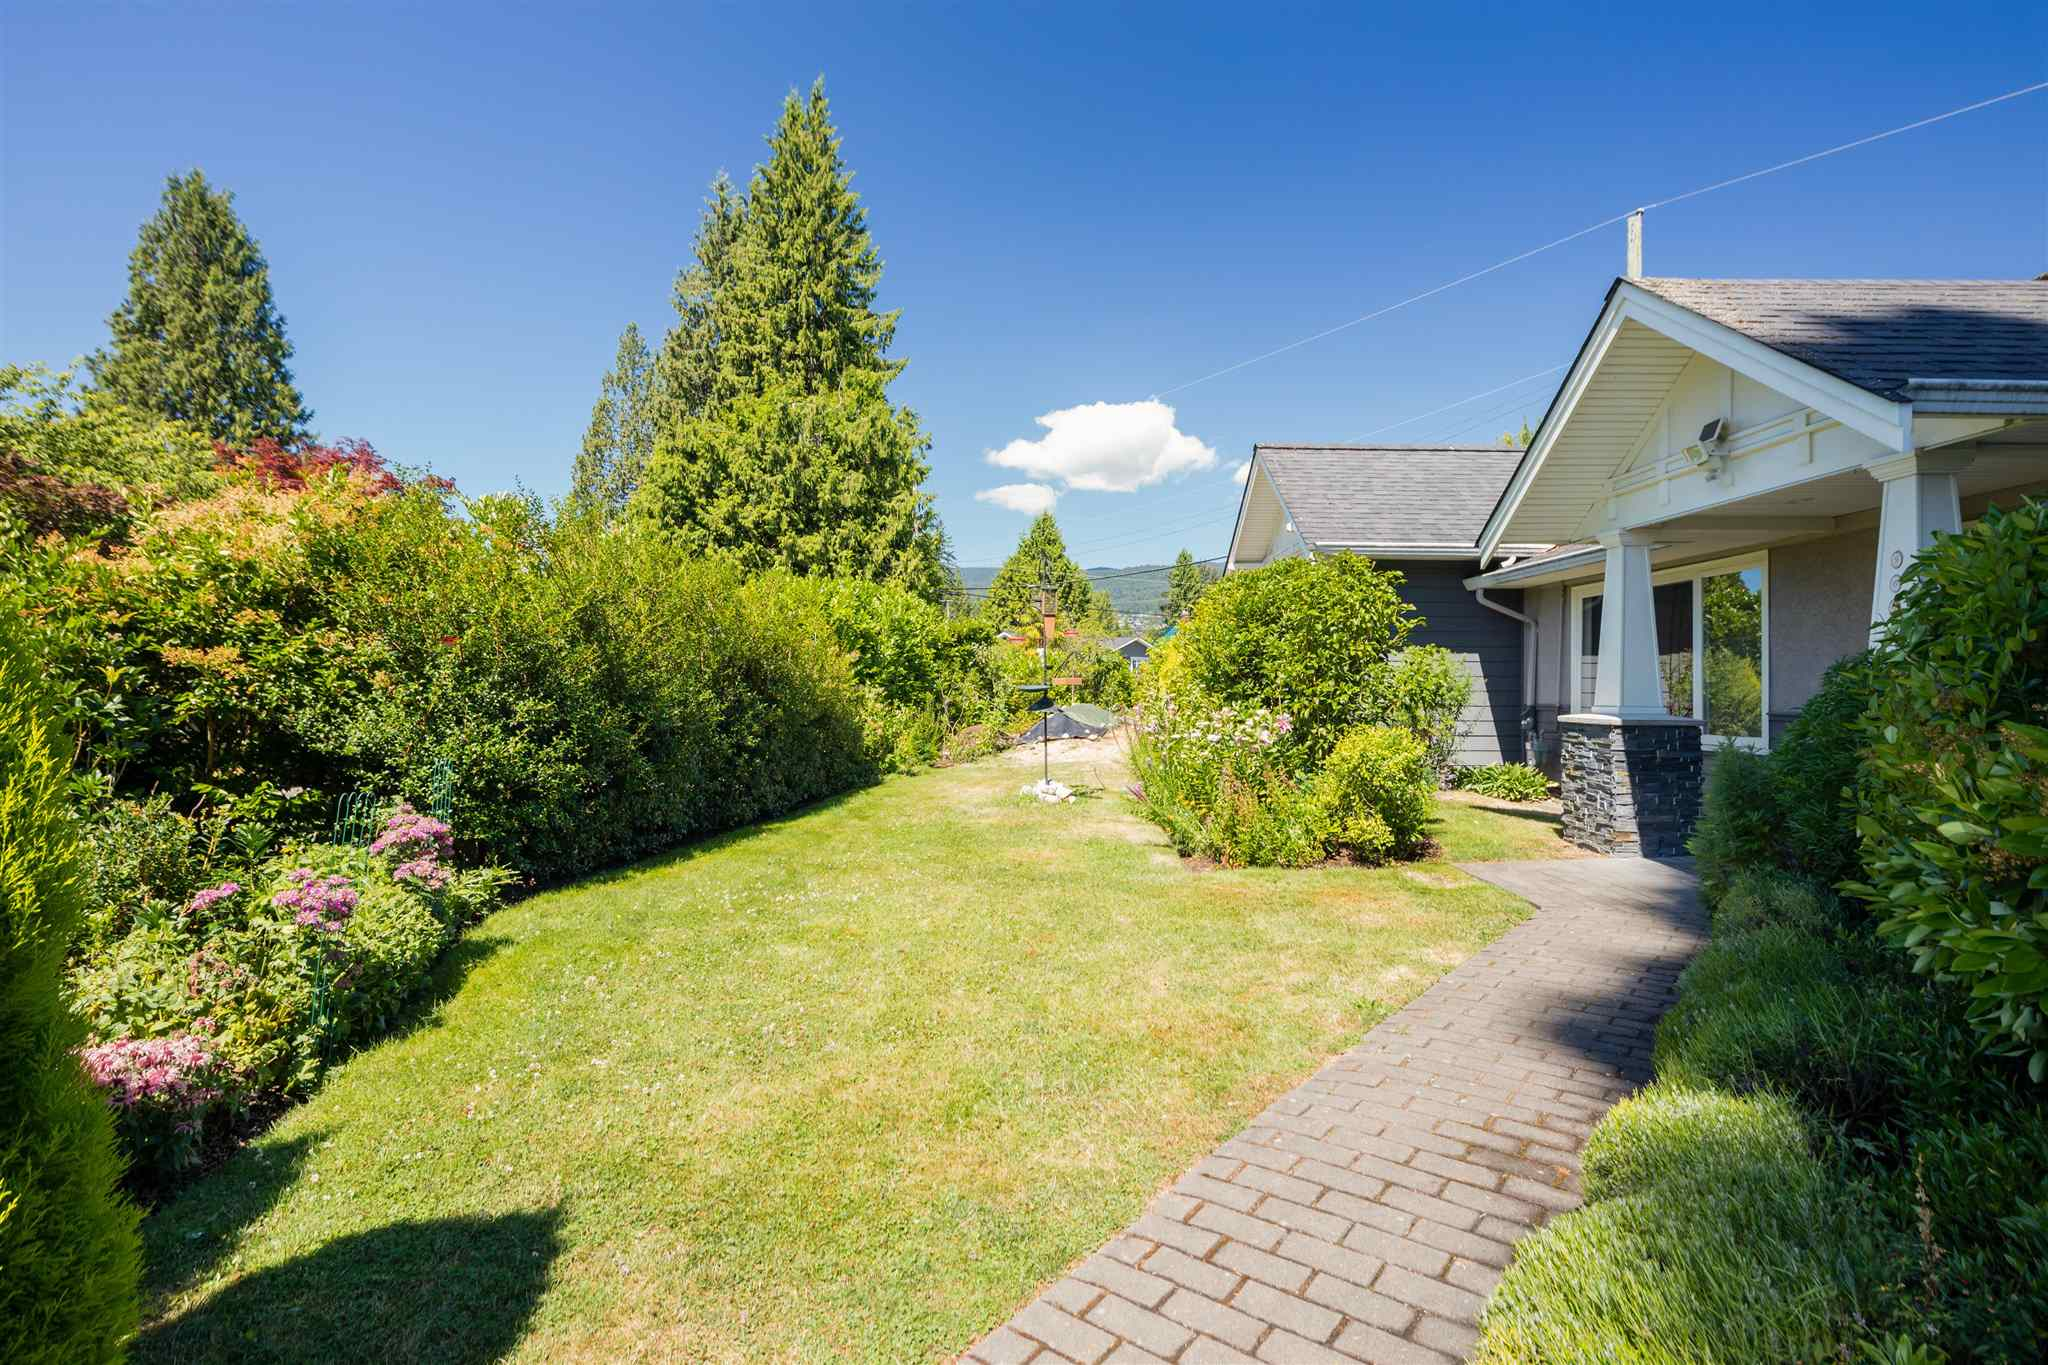 960 W QUEENS ROAD - Edgemont House/Single Family for sale, 2 Bedrooms (R2623308) - #2